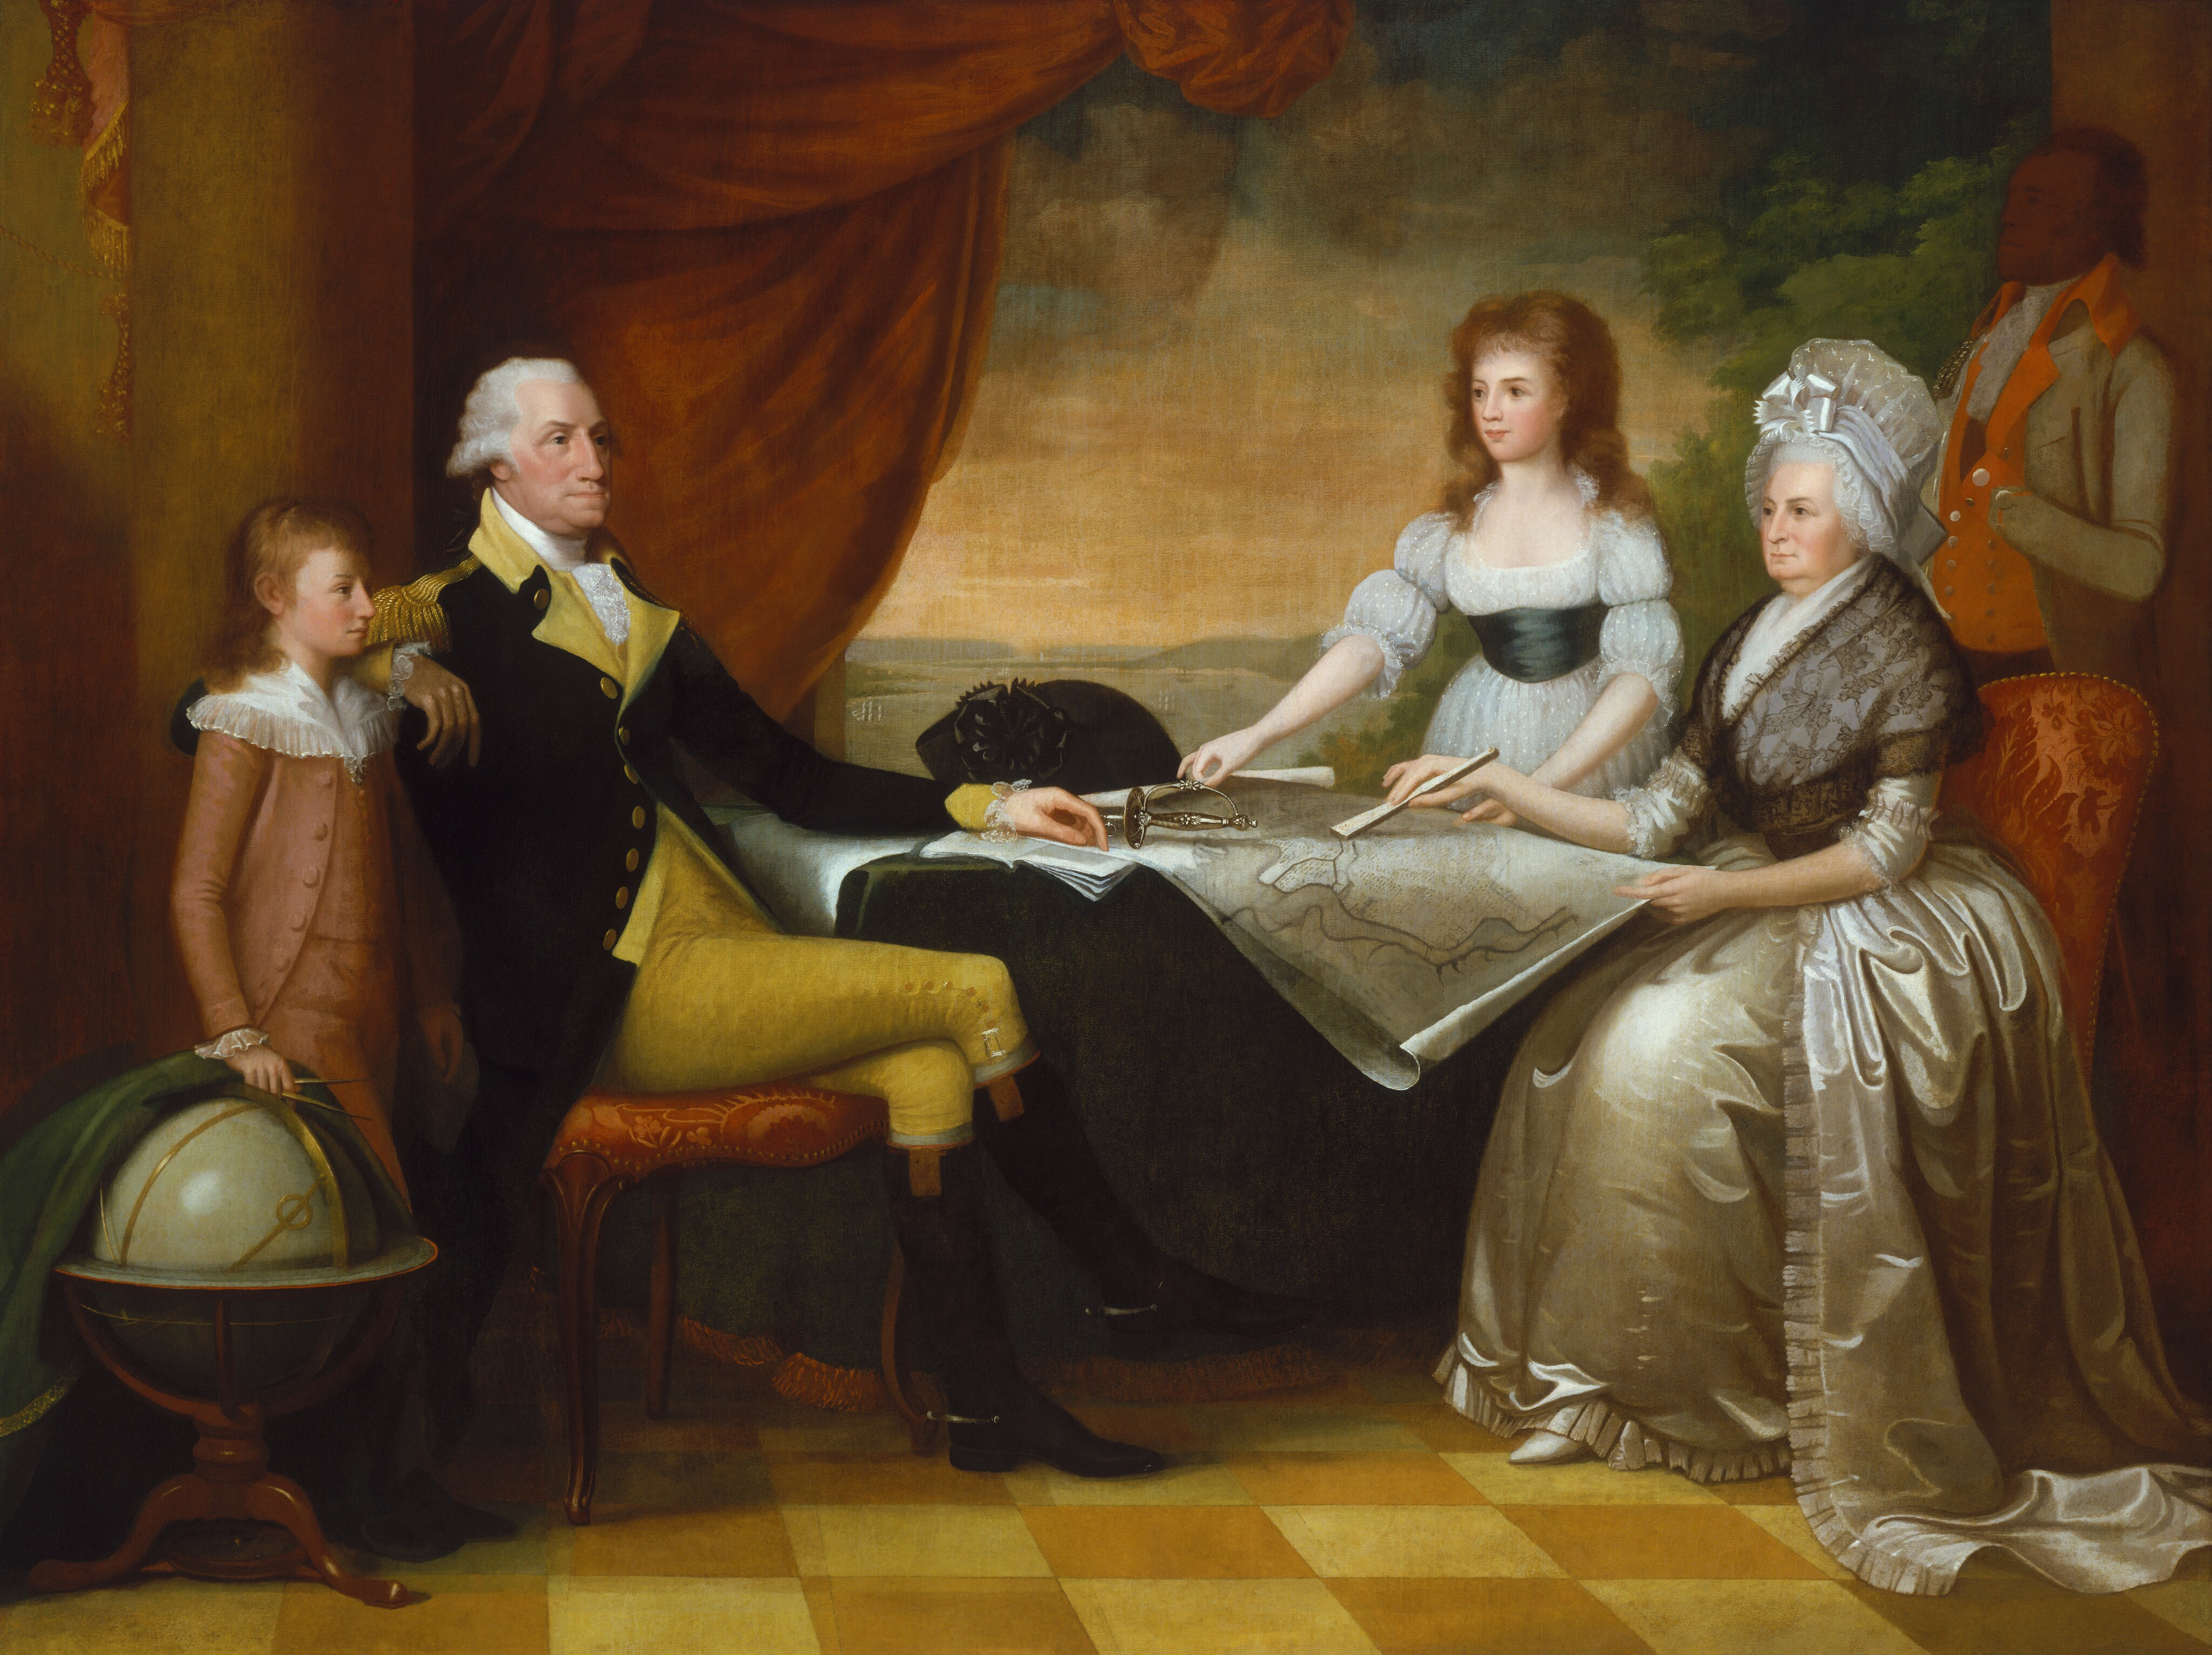 The untold story of George Washington's heirs to be published by Marymount professor